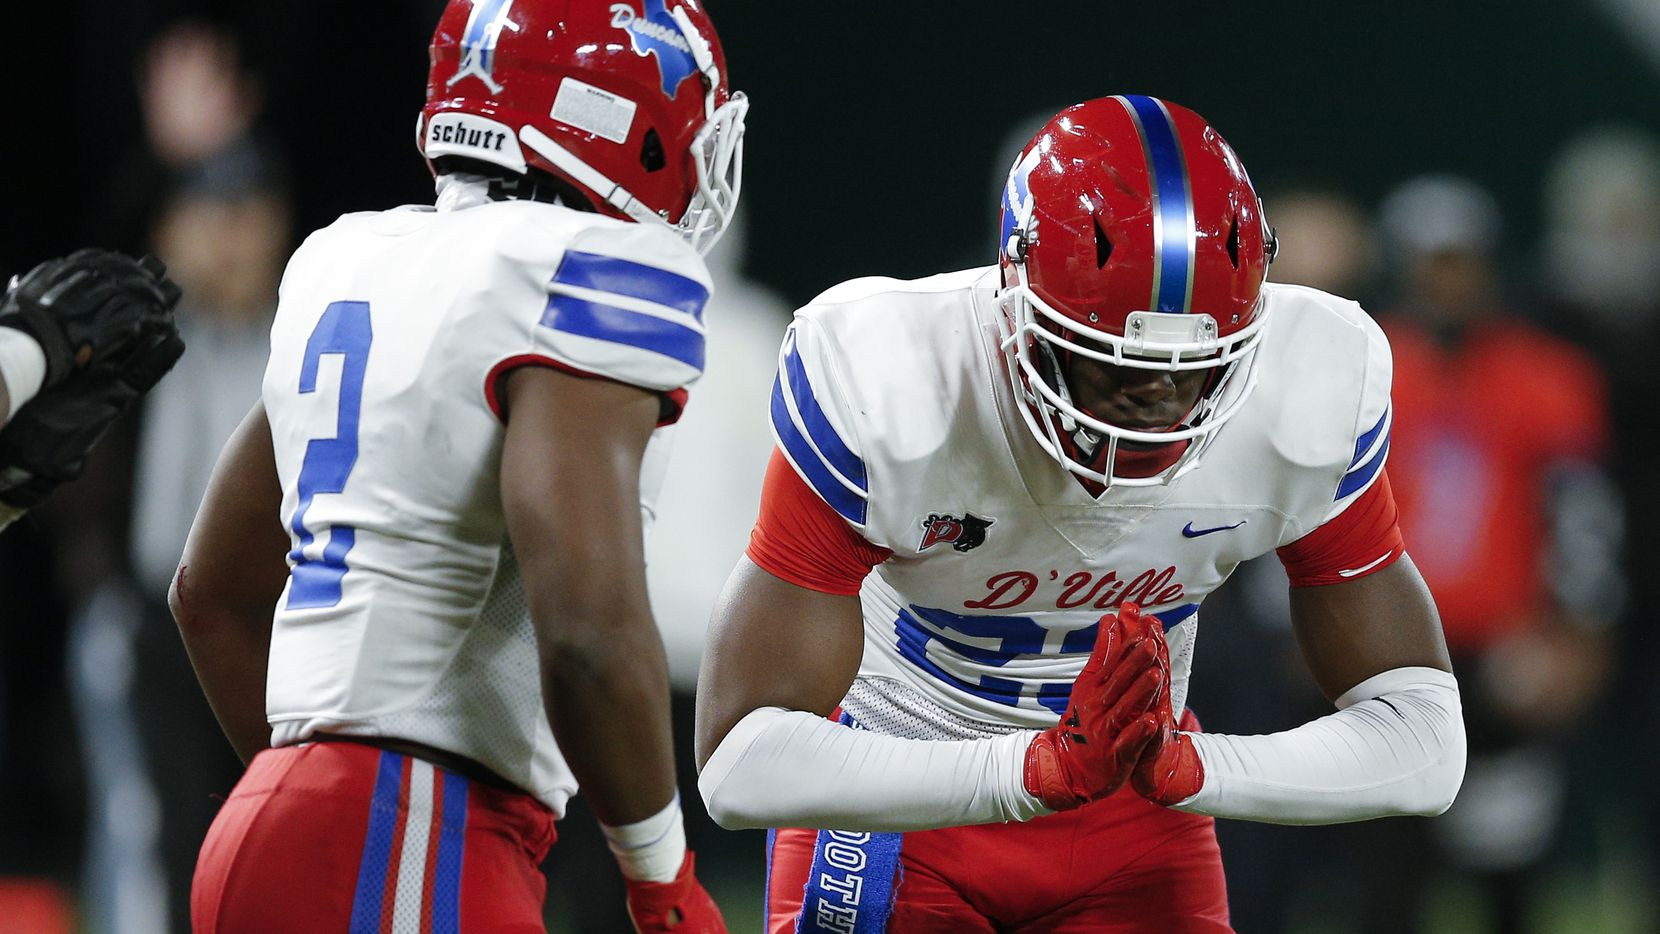 Duncanville linebacker Jordan Crook (2) looks on as defensive end Omari Abor (23) celebrates a sack in the first half of the Class 6A Div. I Region II final against DeSoto on Saturday, Jan. 2, 2021.